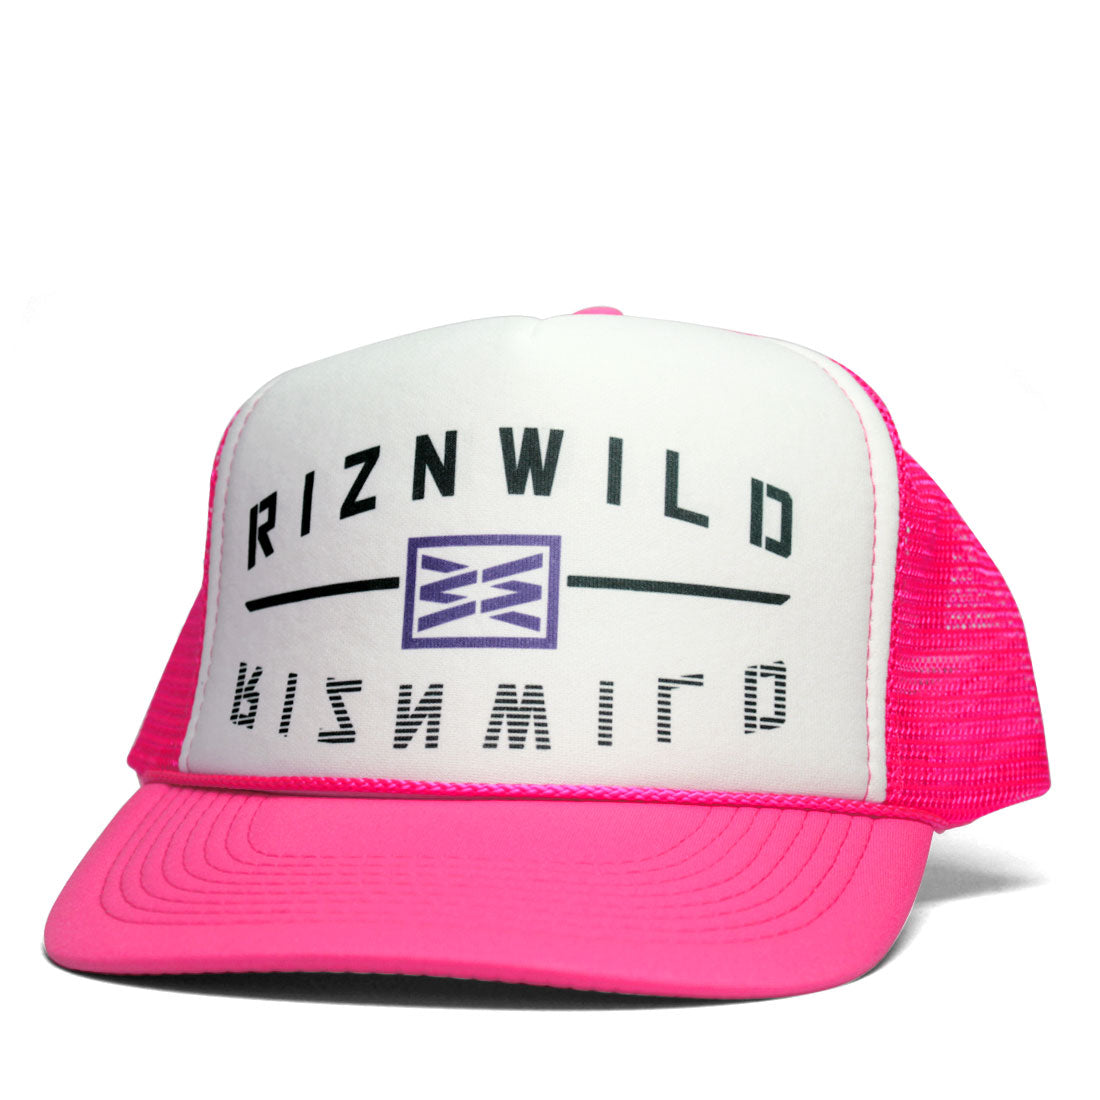 Rewind Curved Bill Trucker Hat in Hot Pink/White